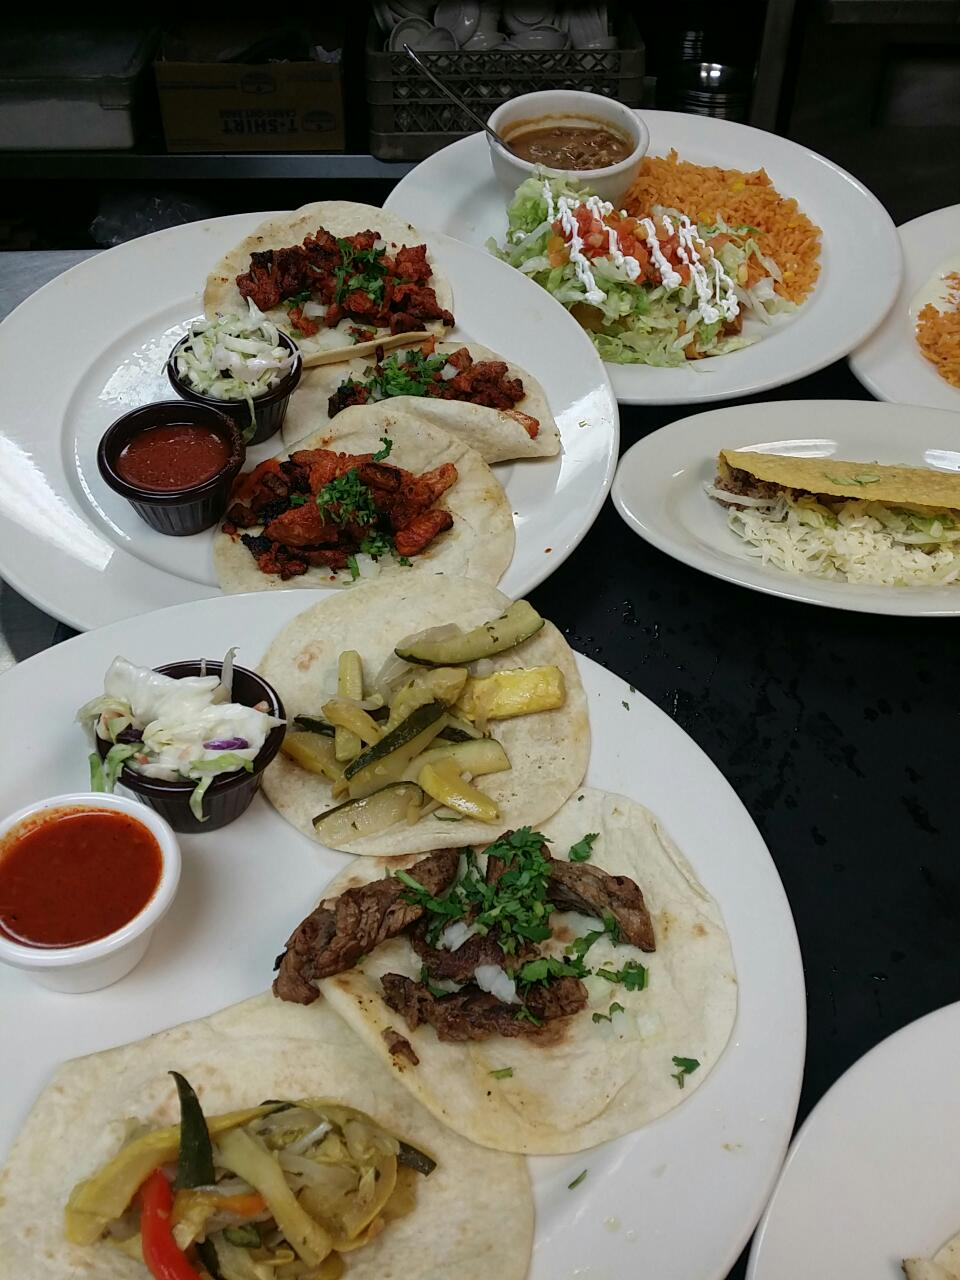 Santo coyote mexican food tequila bar coupons near me in for Food bar near me